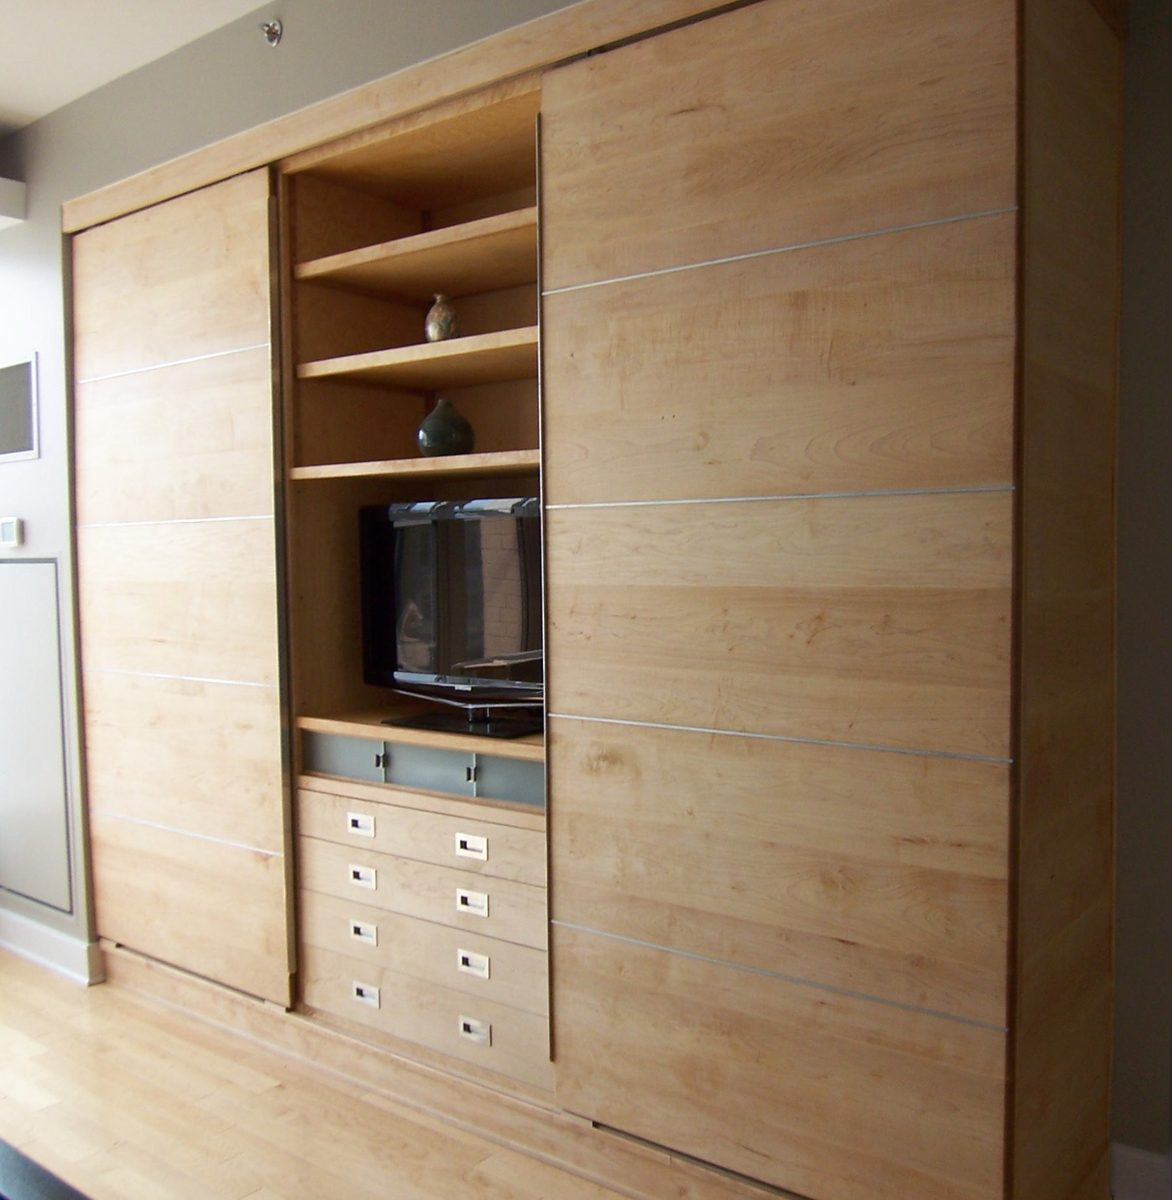 wall-storage-units-bedroom-design - Schrapper\'s Fine Cabinetry and ...